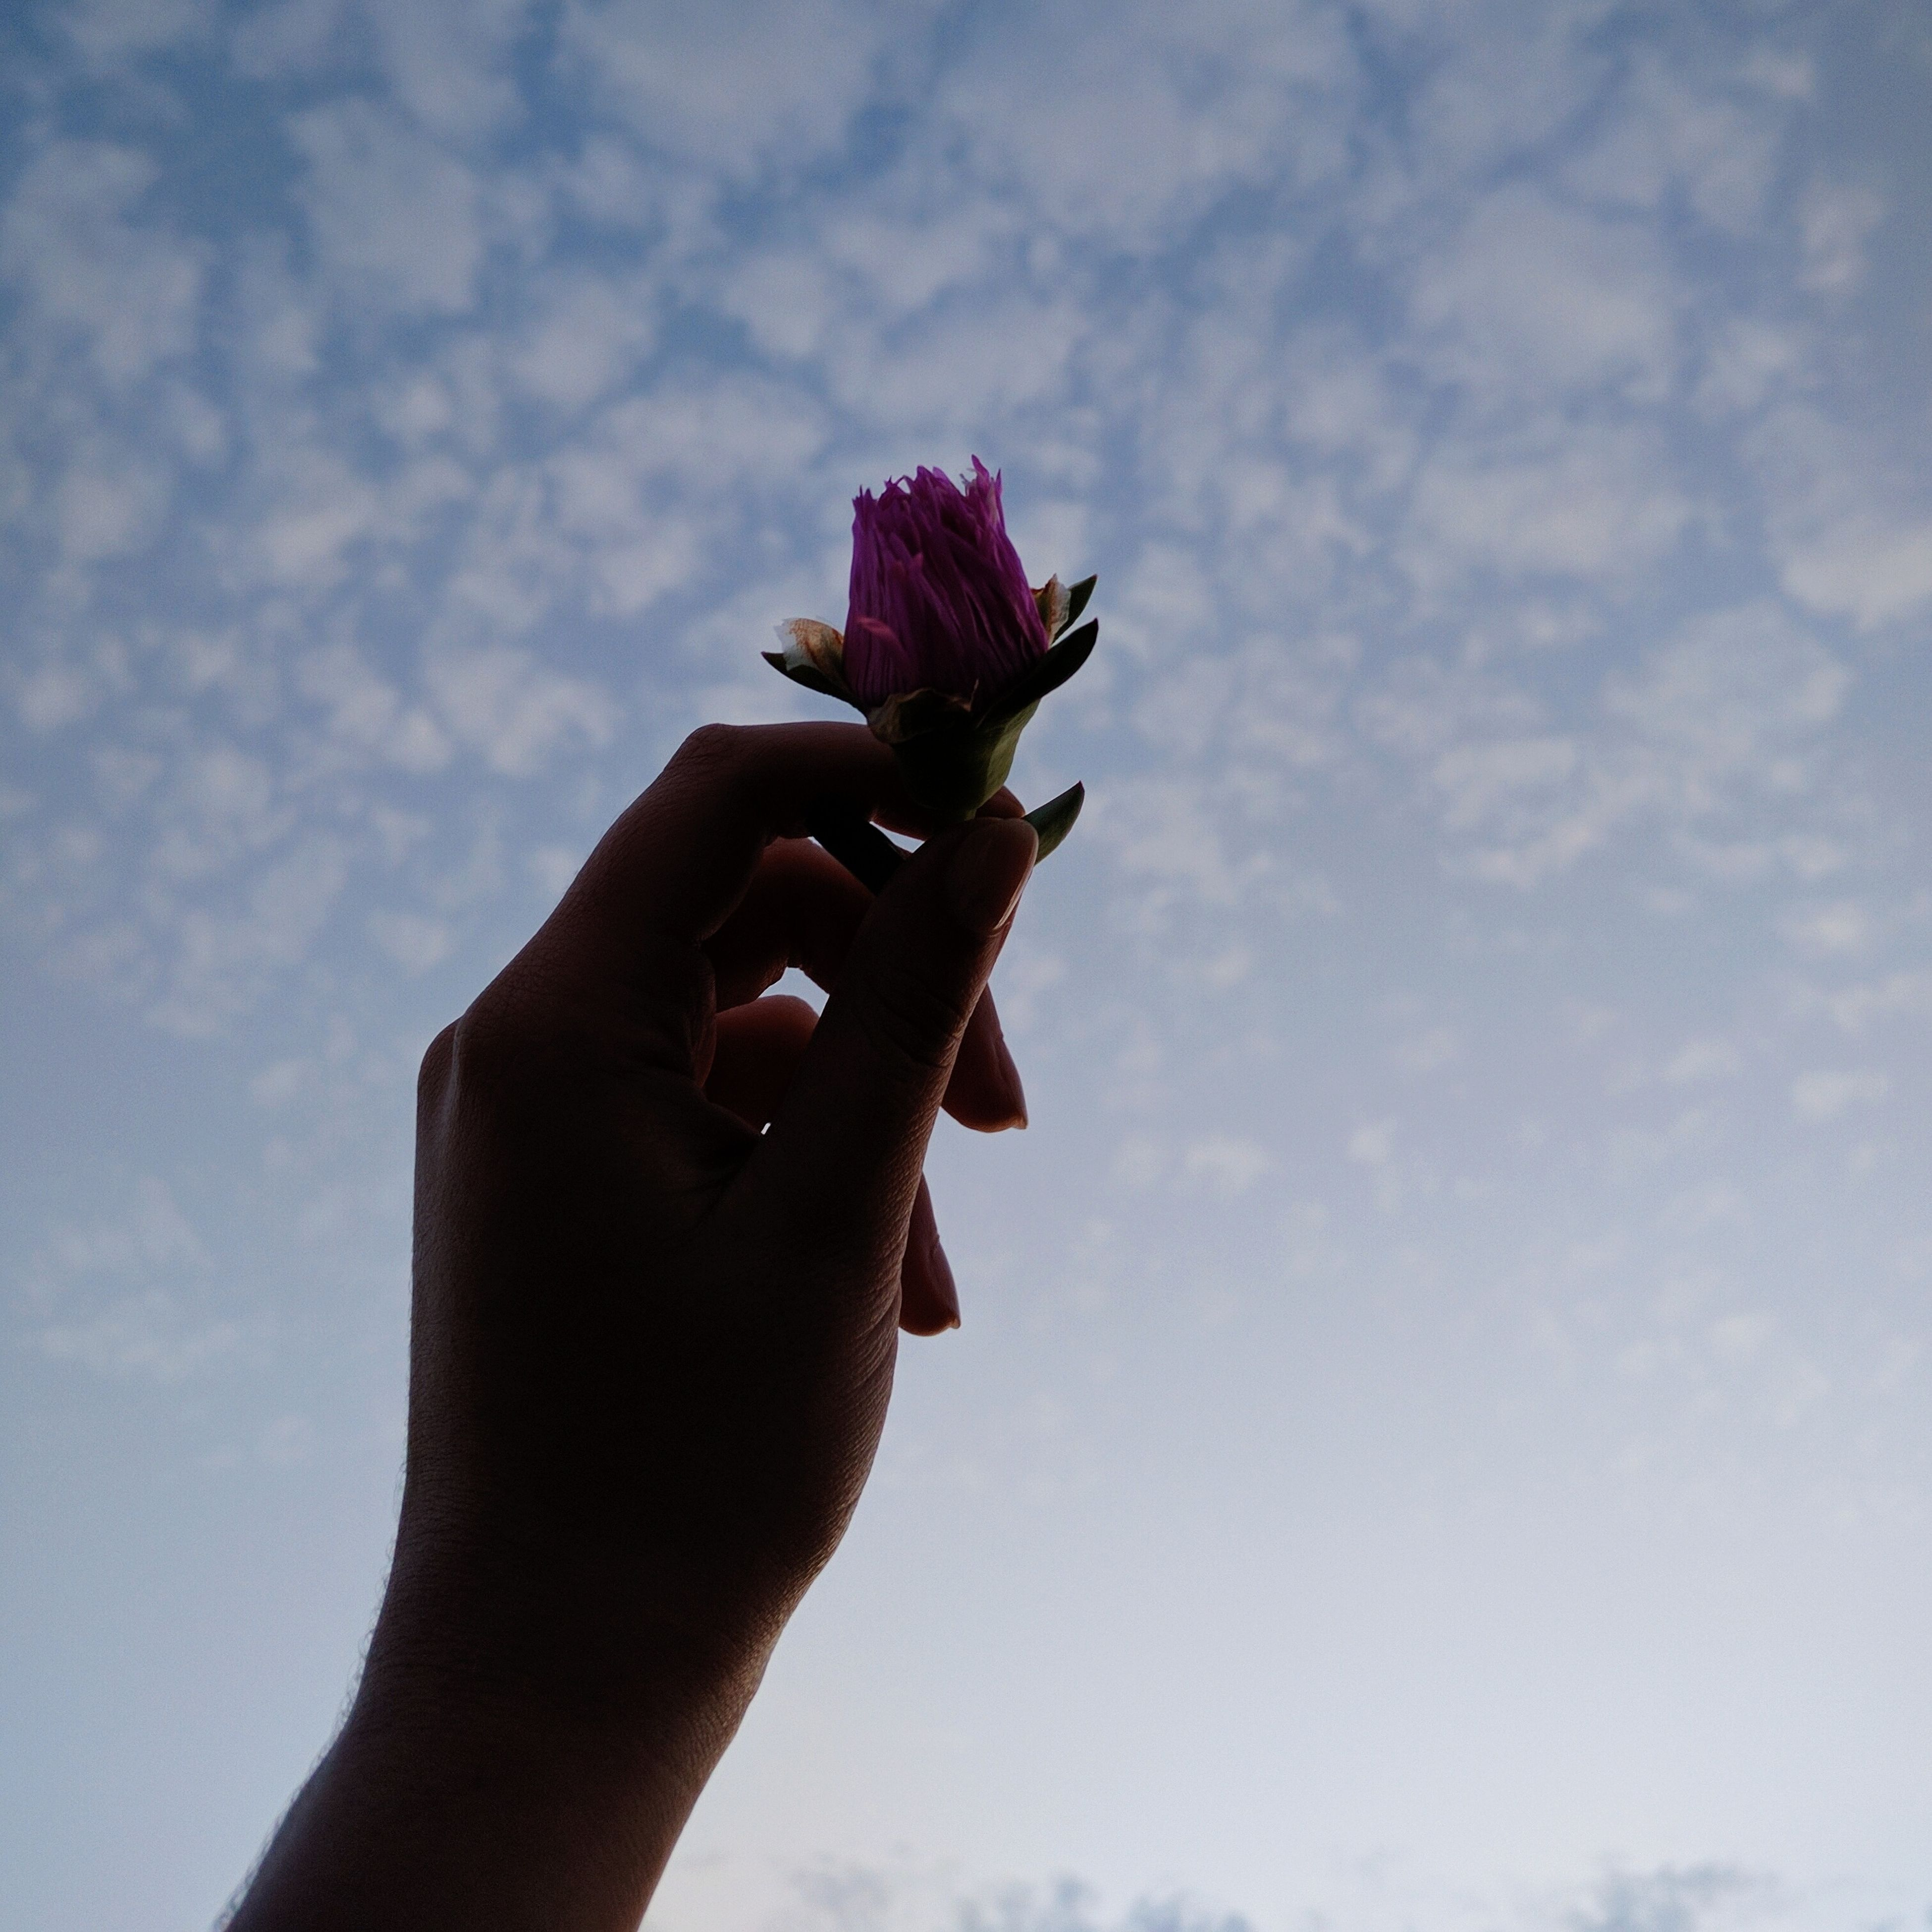 sky, human hand, low angle view, one person, personal perspective, outdoors, human body part, cloud - sky, day, real people, close-up, nature